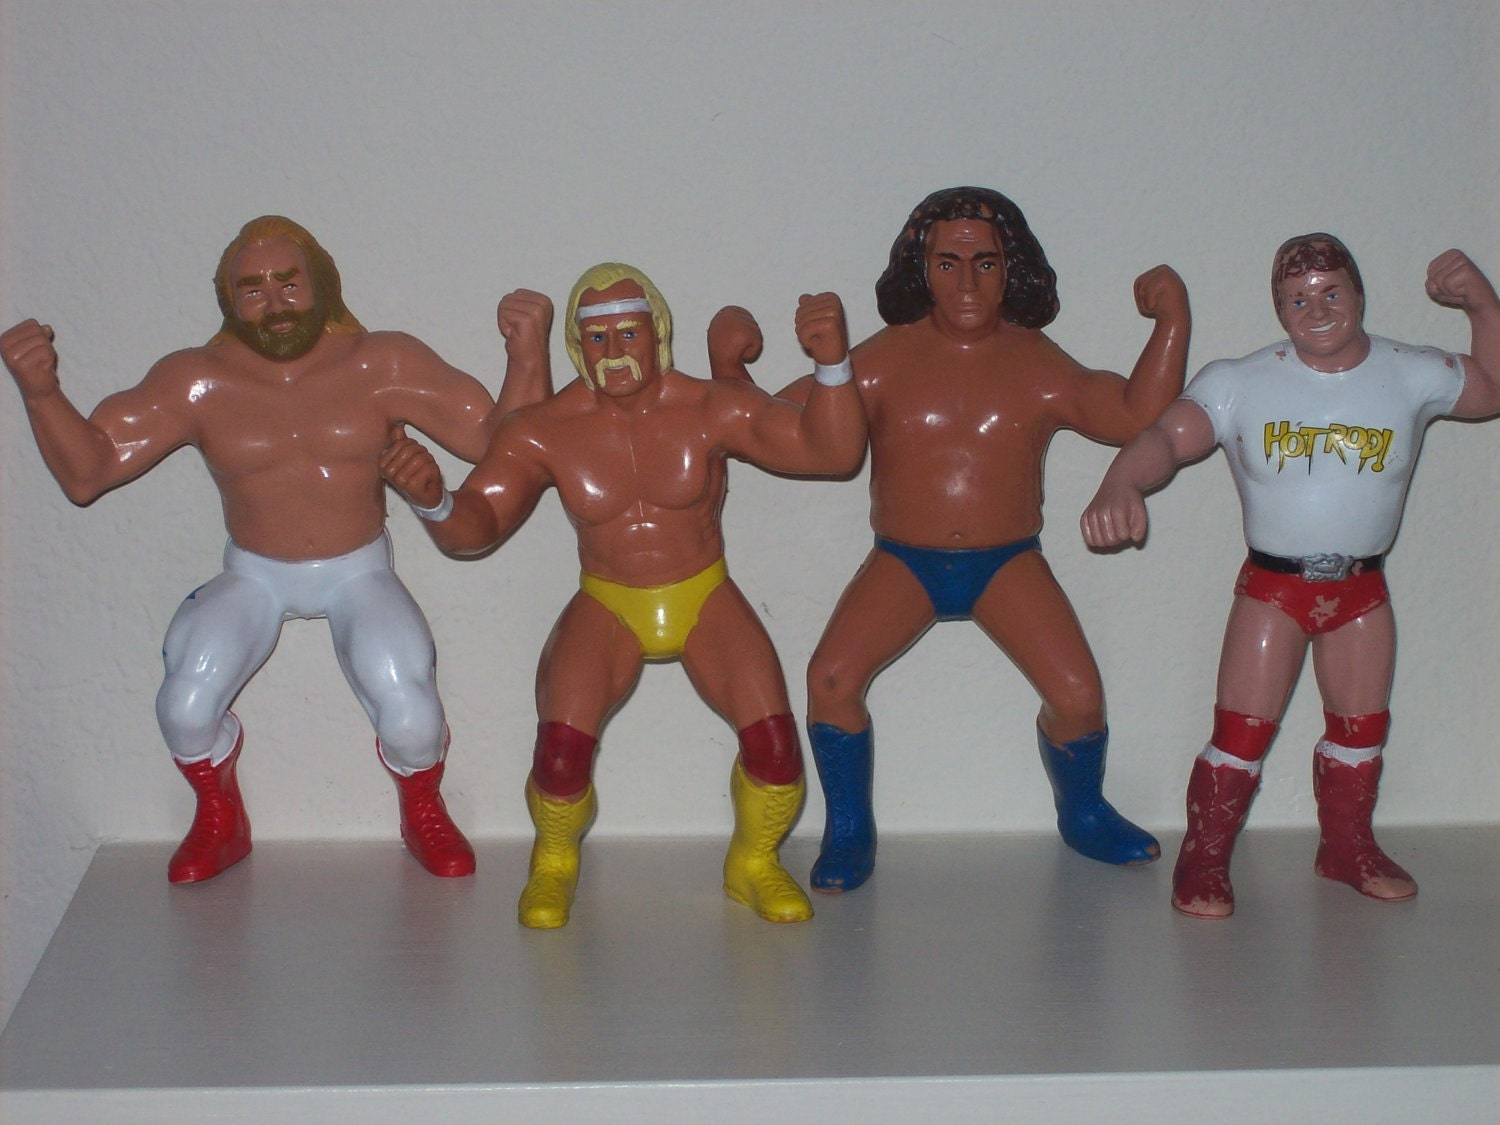 Toys From The 1980s : Vintage s set of four wwf wrestling figures dolls ljn